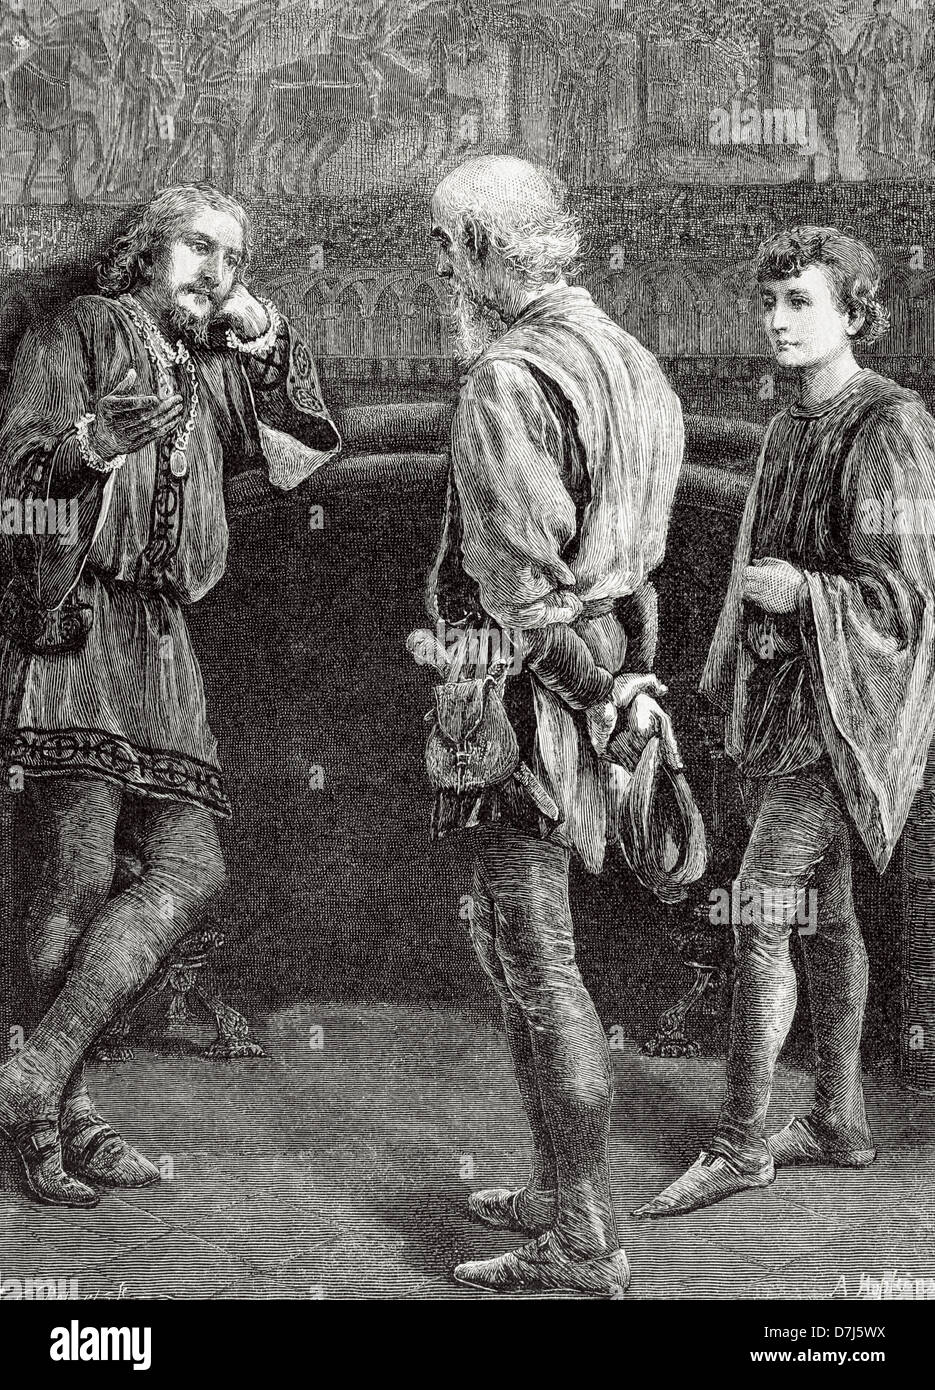 William Shakespeare (1564-1616). English writer. Hamlet and the comedians. Act II, Scene II. Engraving. - Stock Image